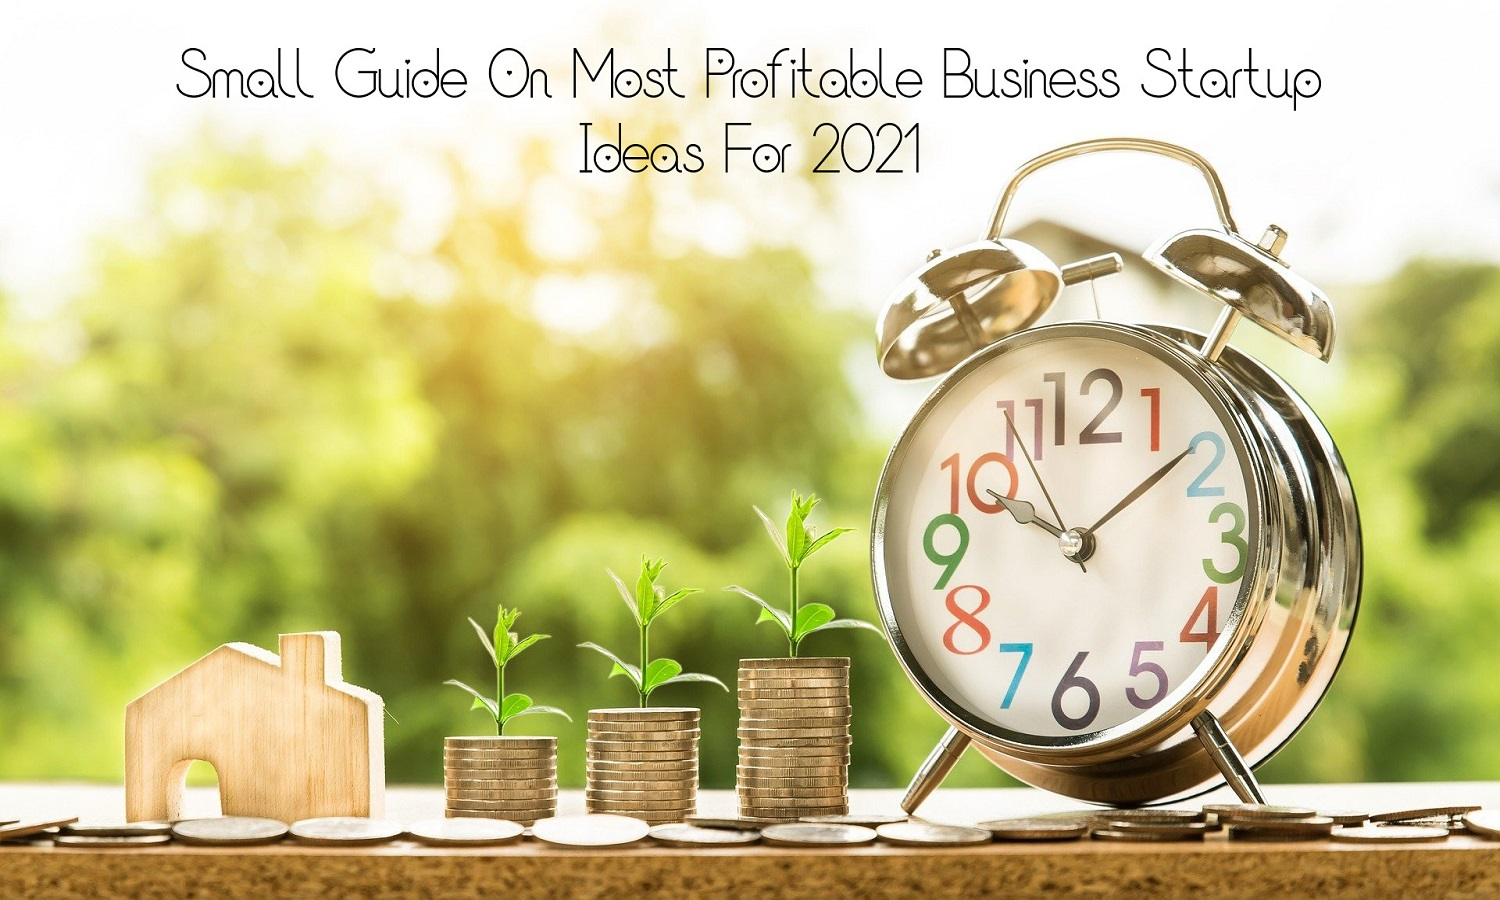 Top 5 Profitable Businesses To Start in Dubai